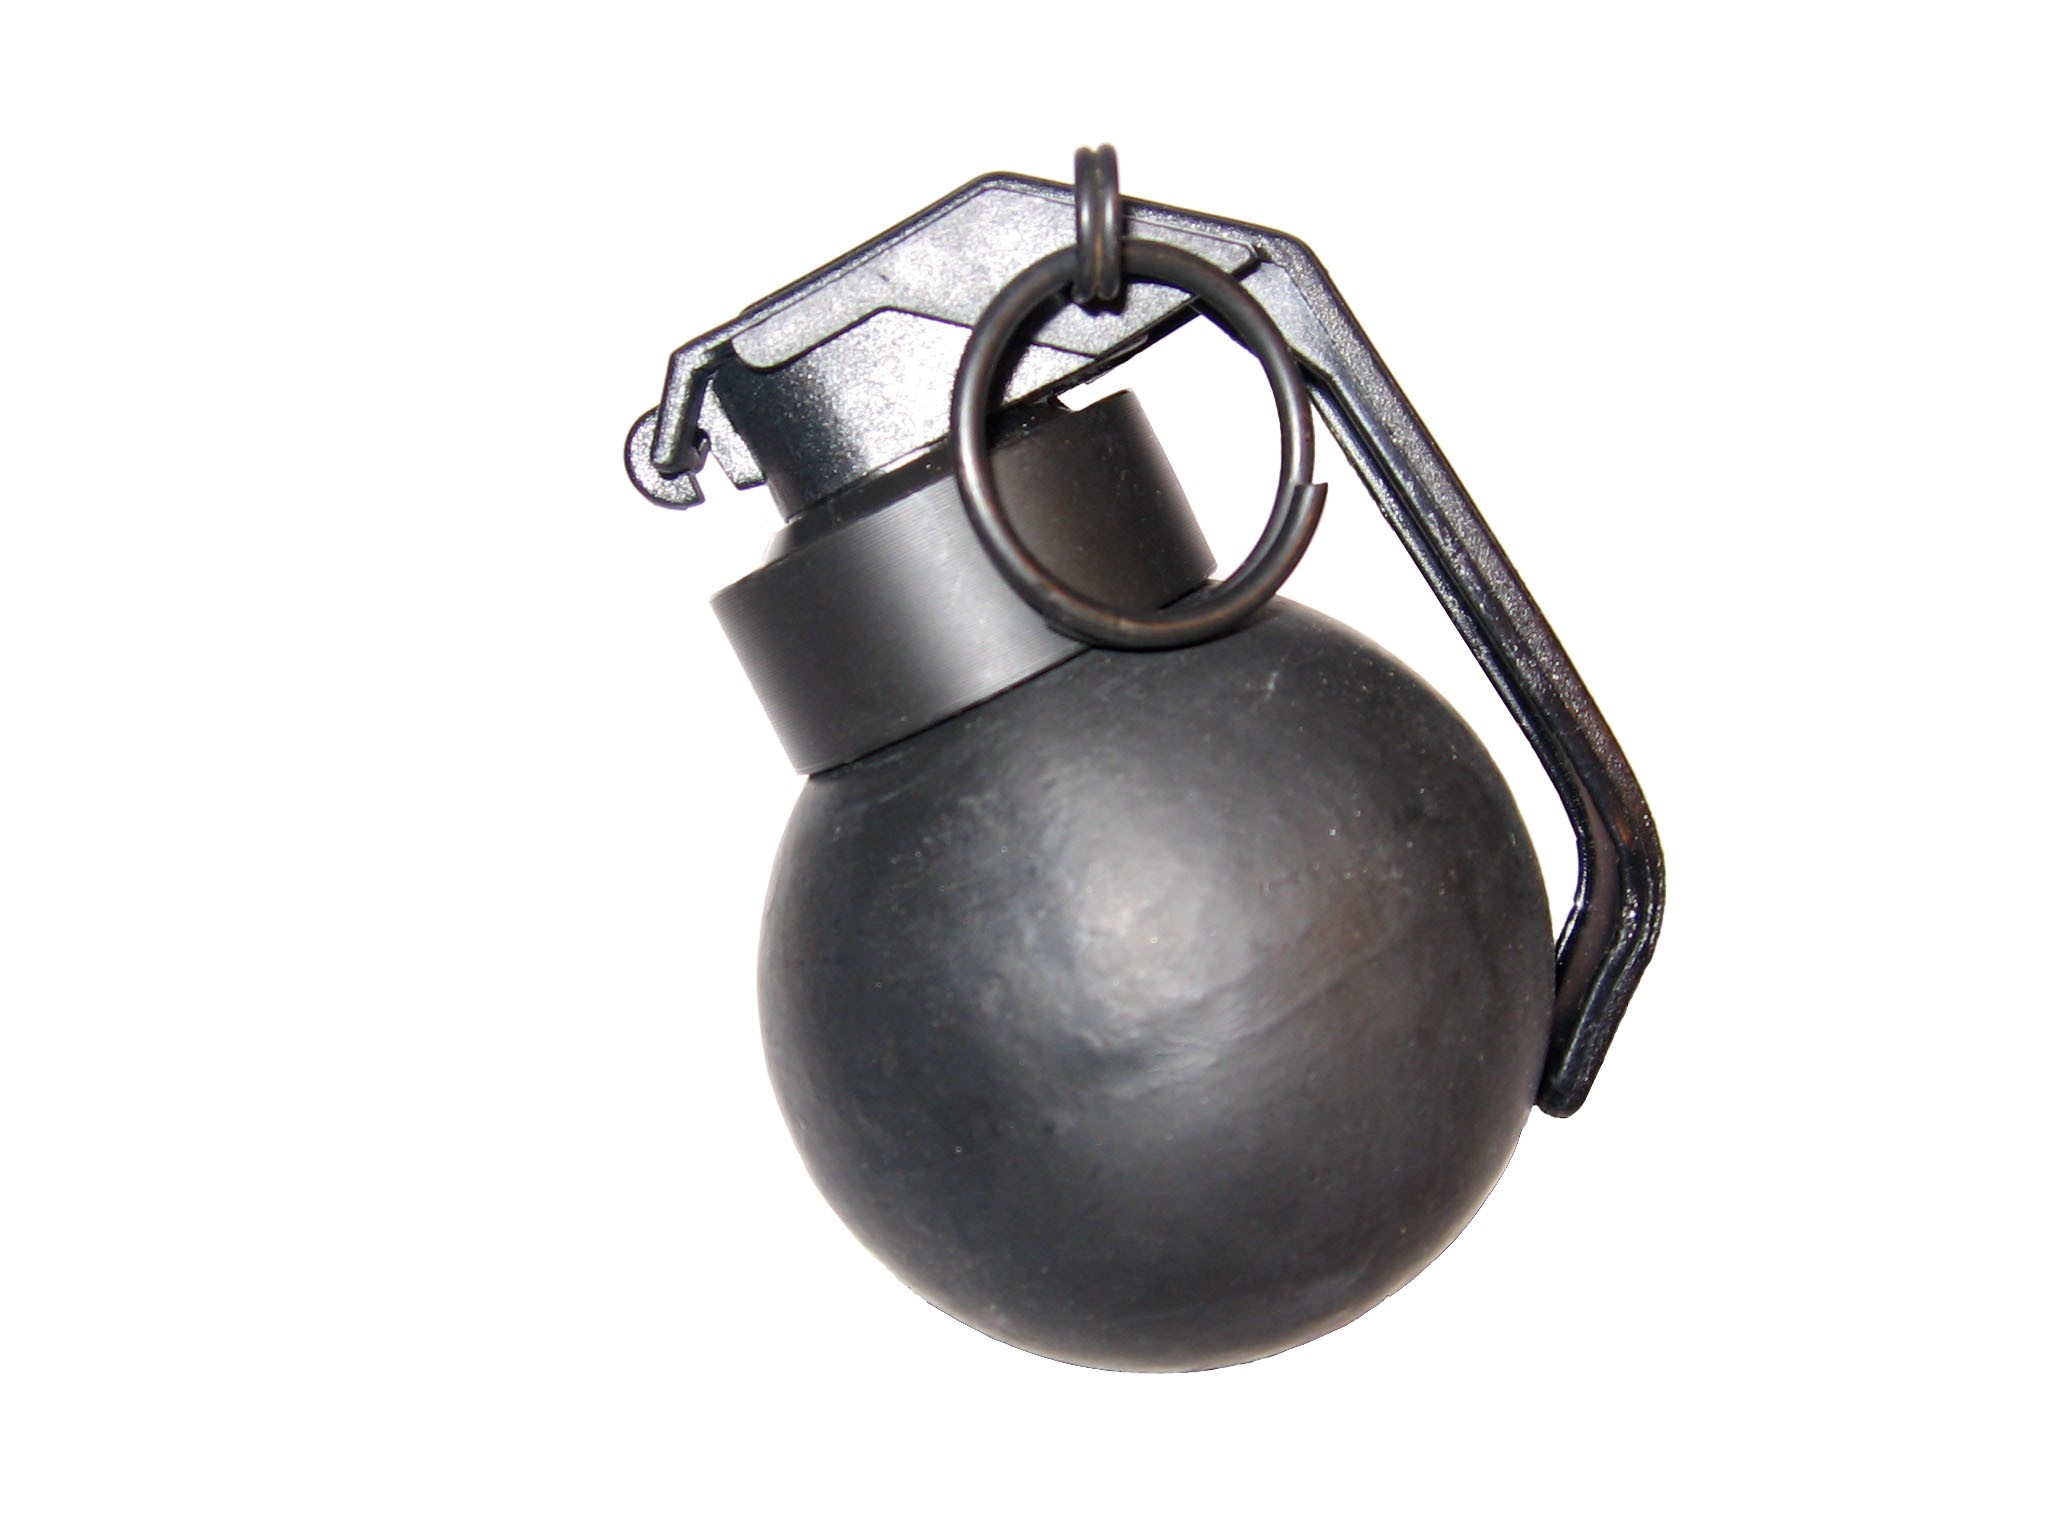 tlsfx m10 ball grenade dried pea 3rd generation. Black Bedroom Furniture Sets. Home Design Ideas